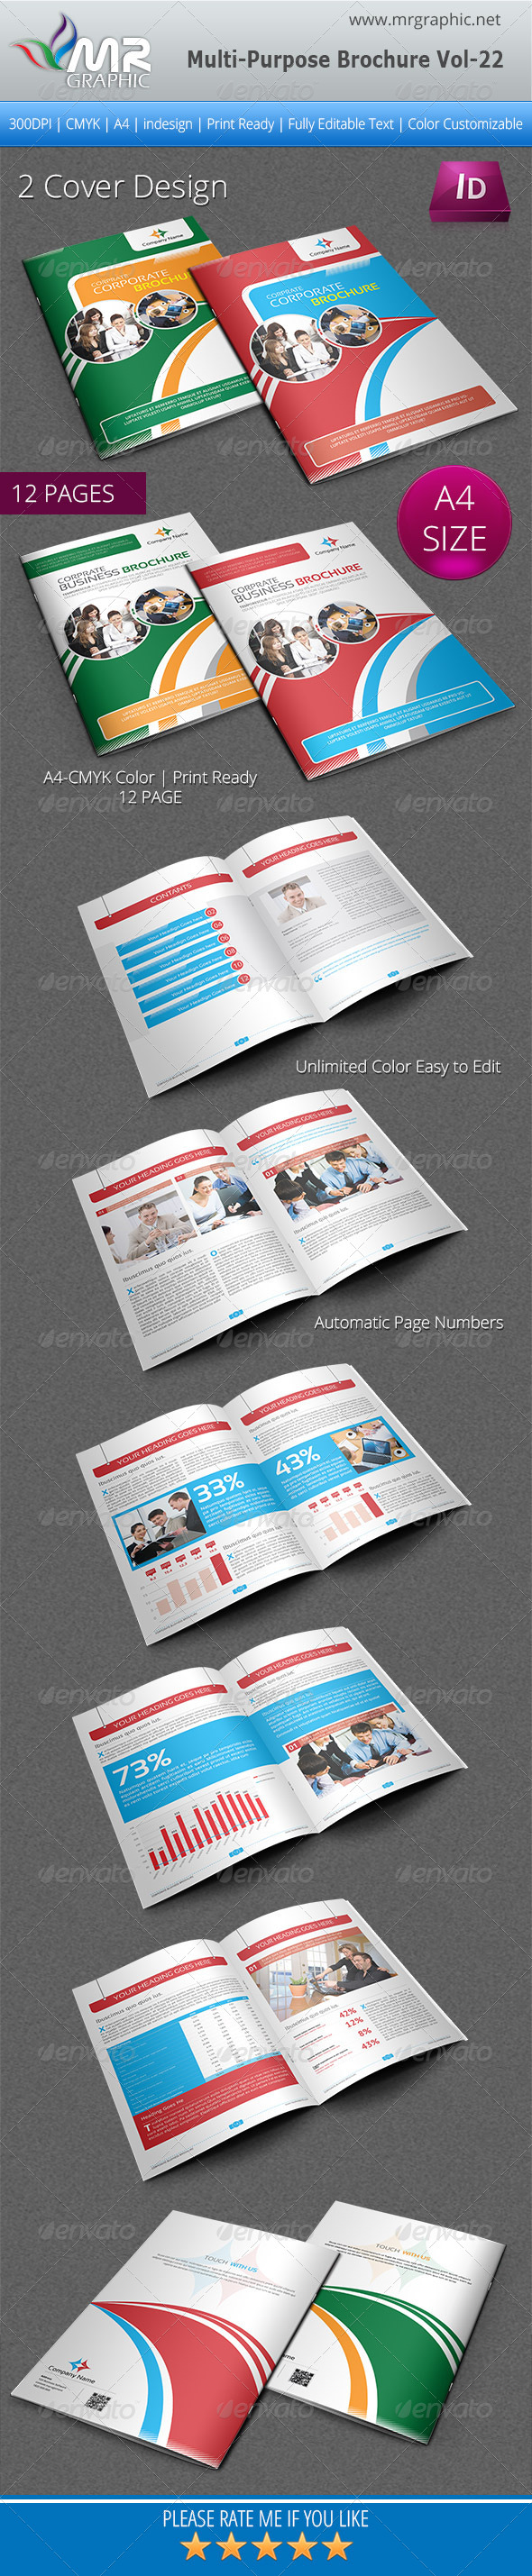 Multipurpose Business Brochure Template Vol-22 - Corporate Brochures